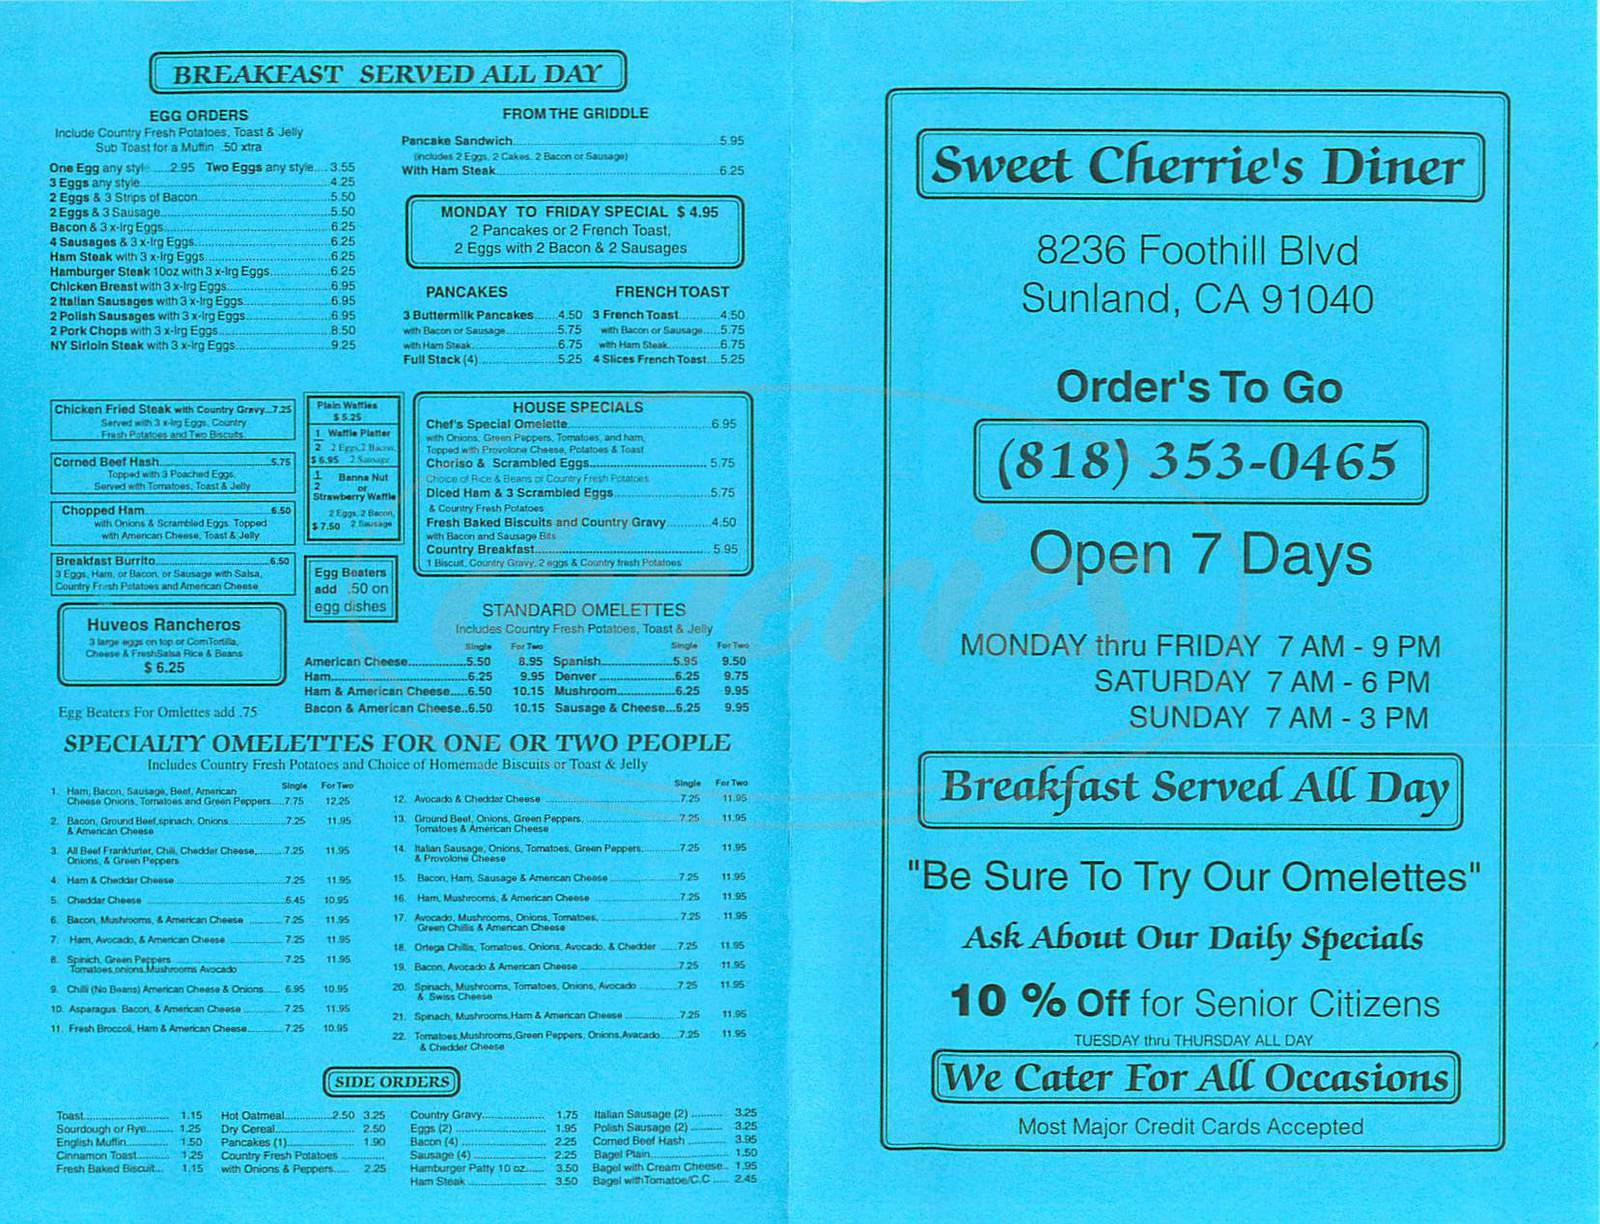 menu for Sweet Cherries Diner